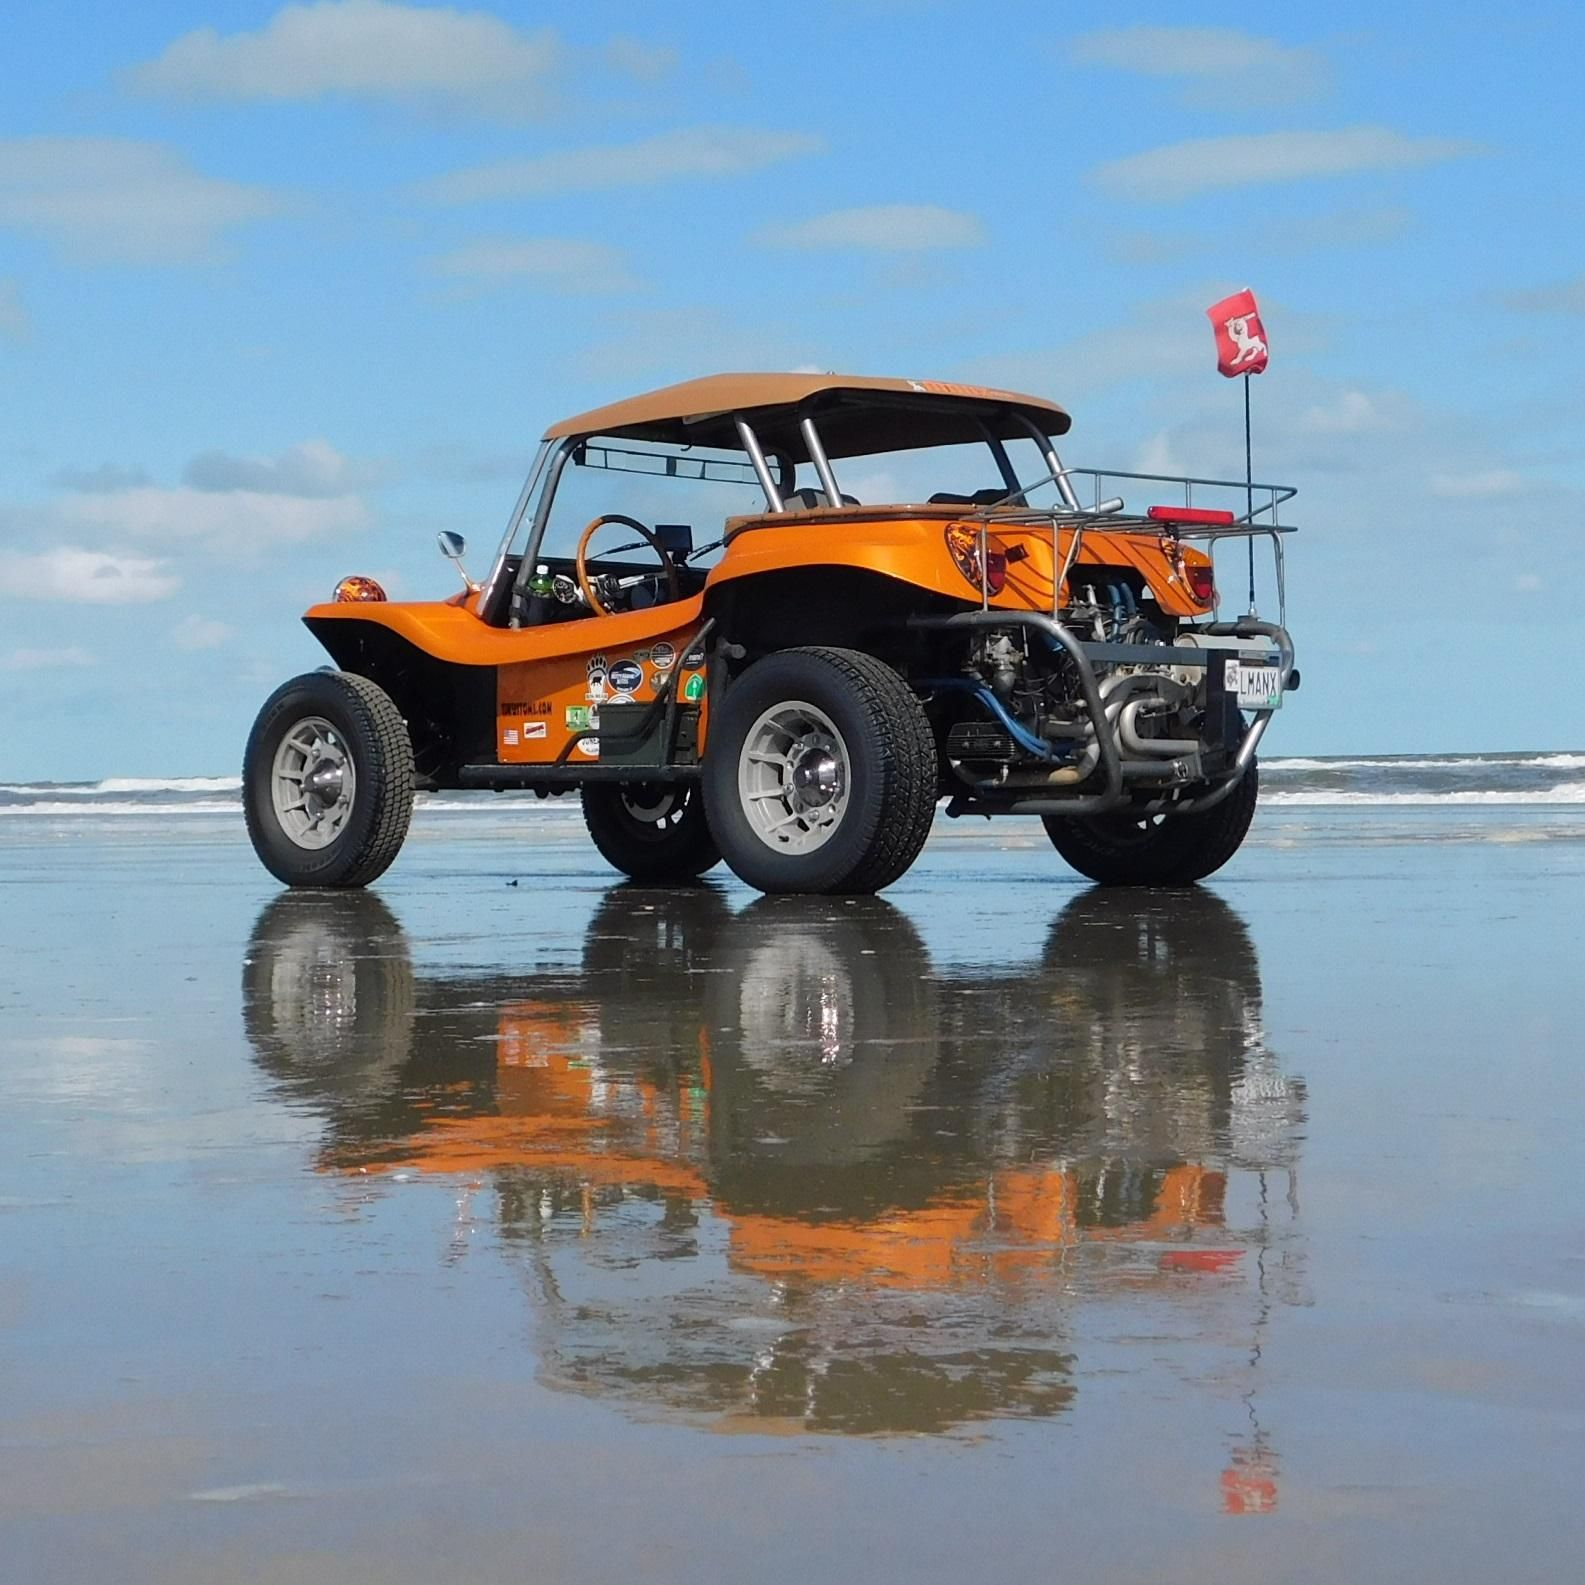 Buggy On The Beach At Manx On The Banx '16